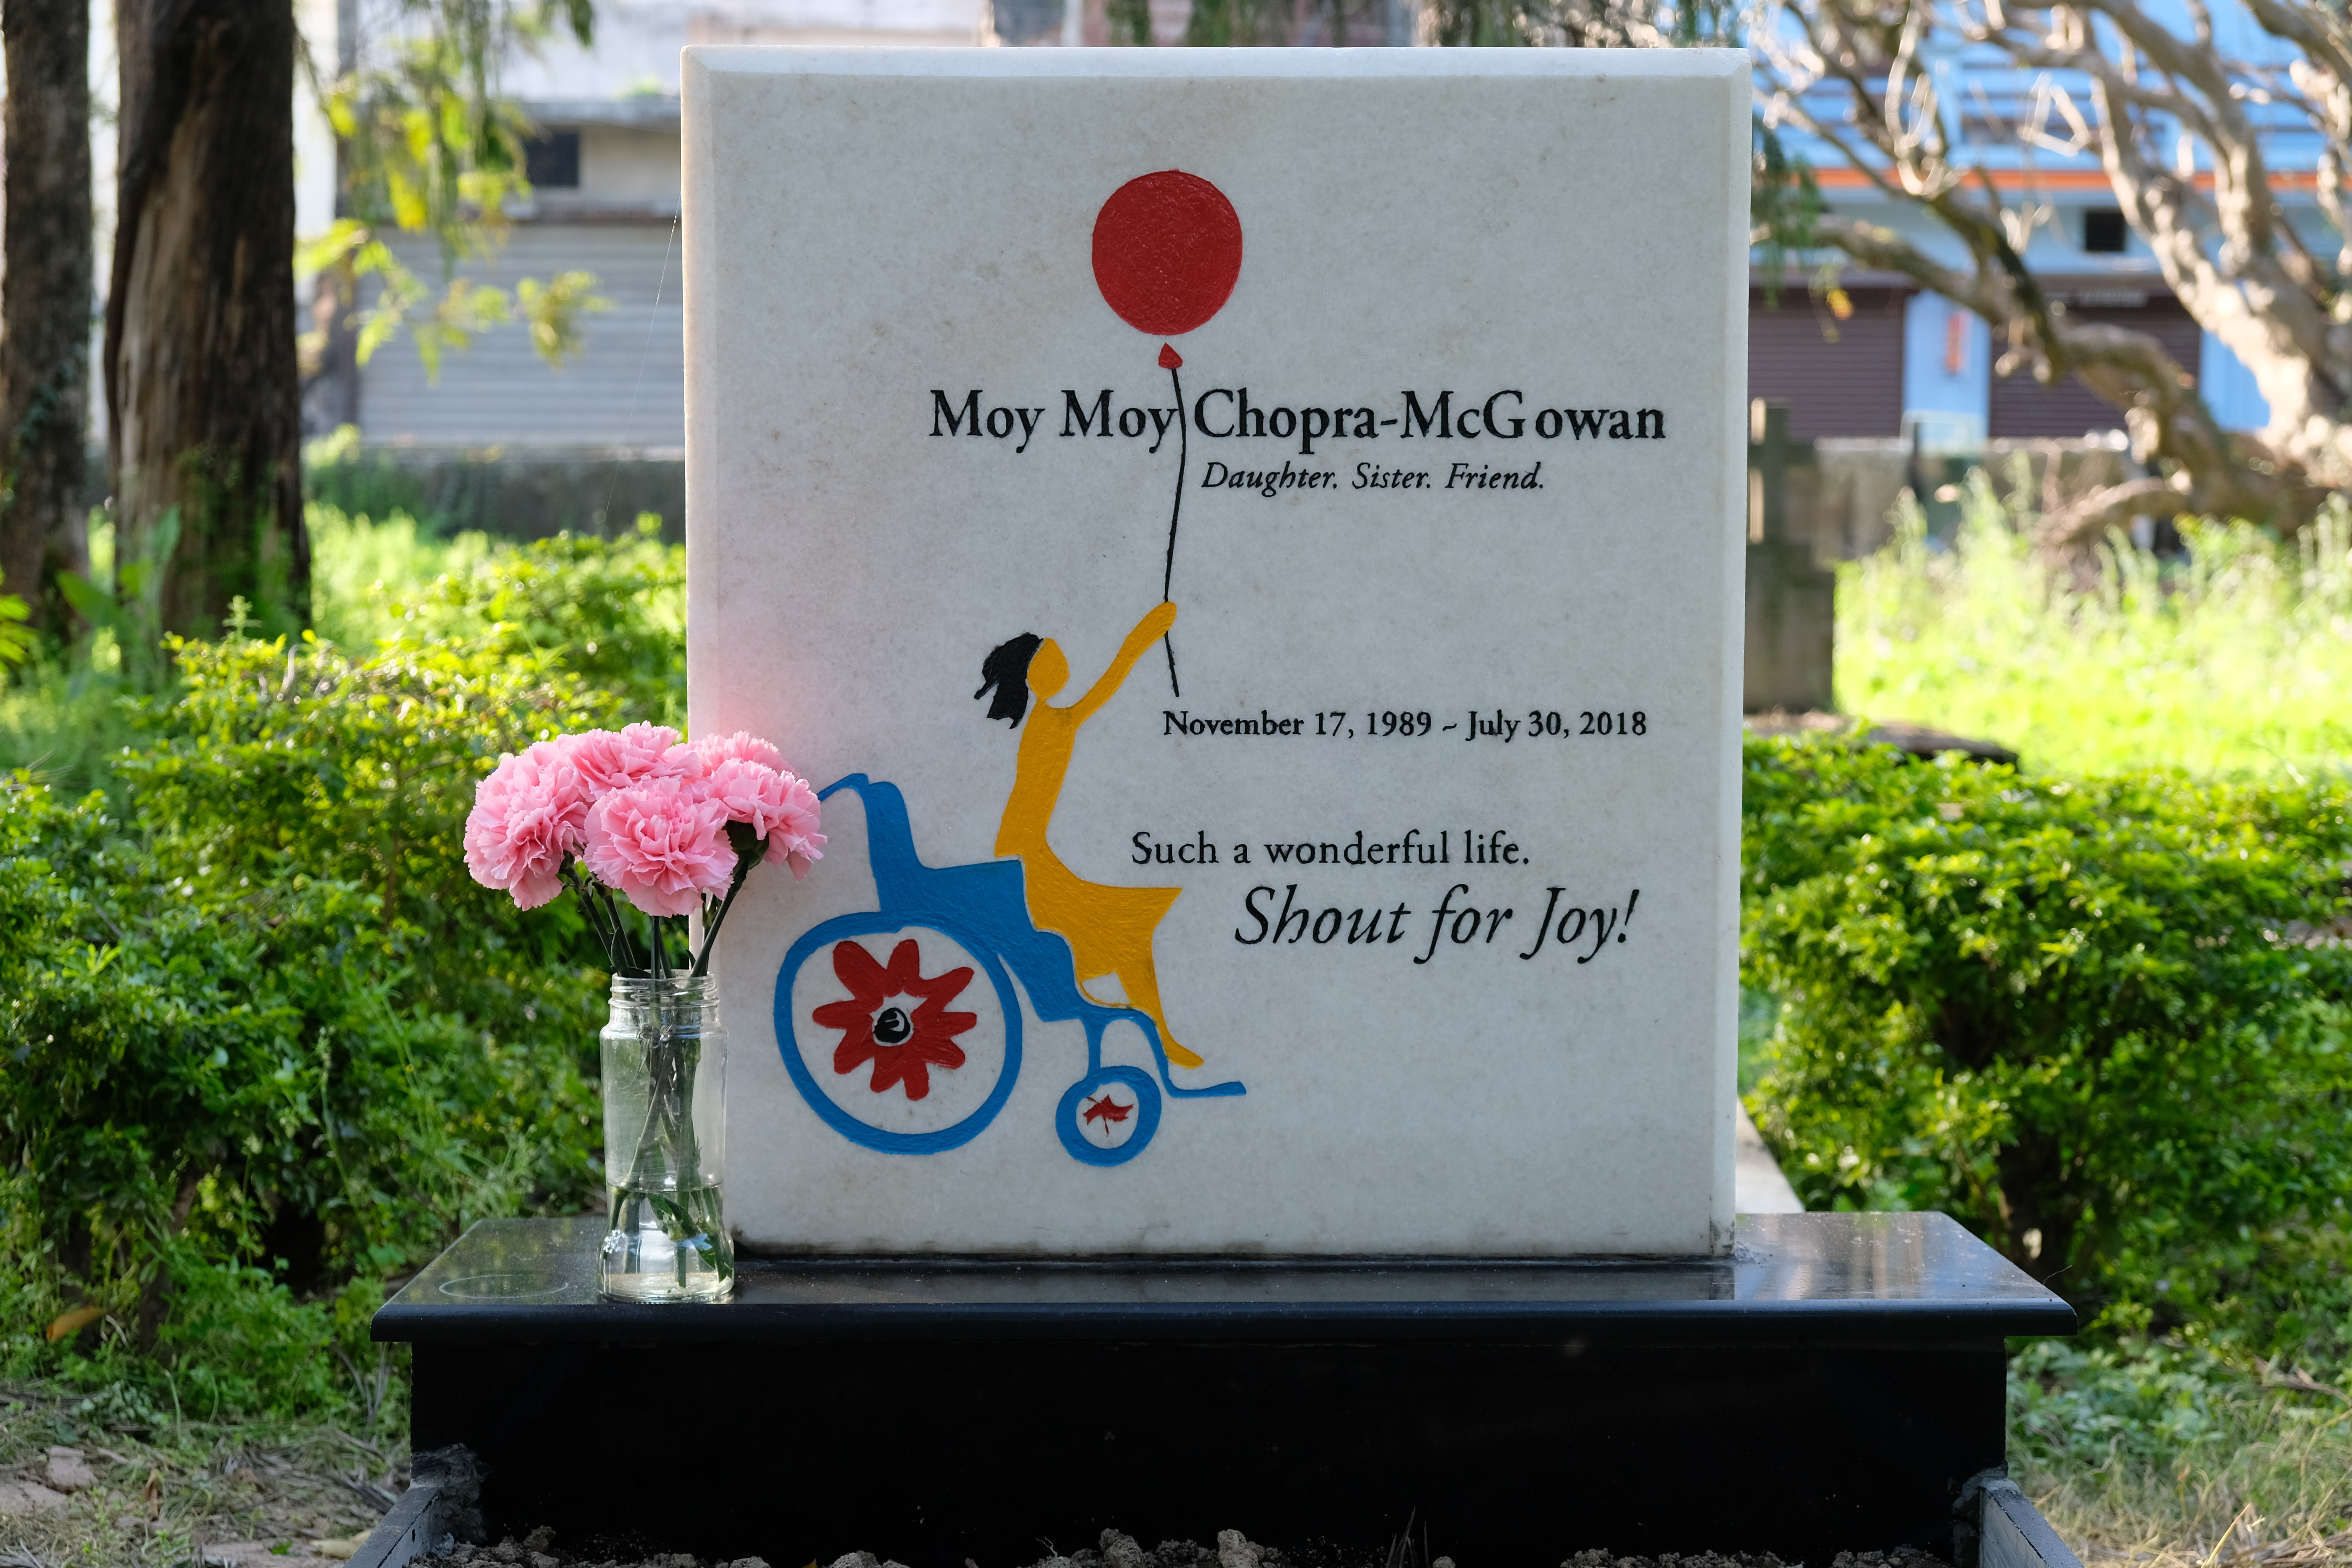 White marble gravestone. Text reads Moy Moy Chopra McGowan Daughter. Sister. Friend. 1989 - 2018 Such a wonderful life. Shout for Joy!